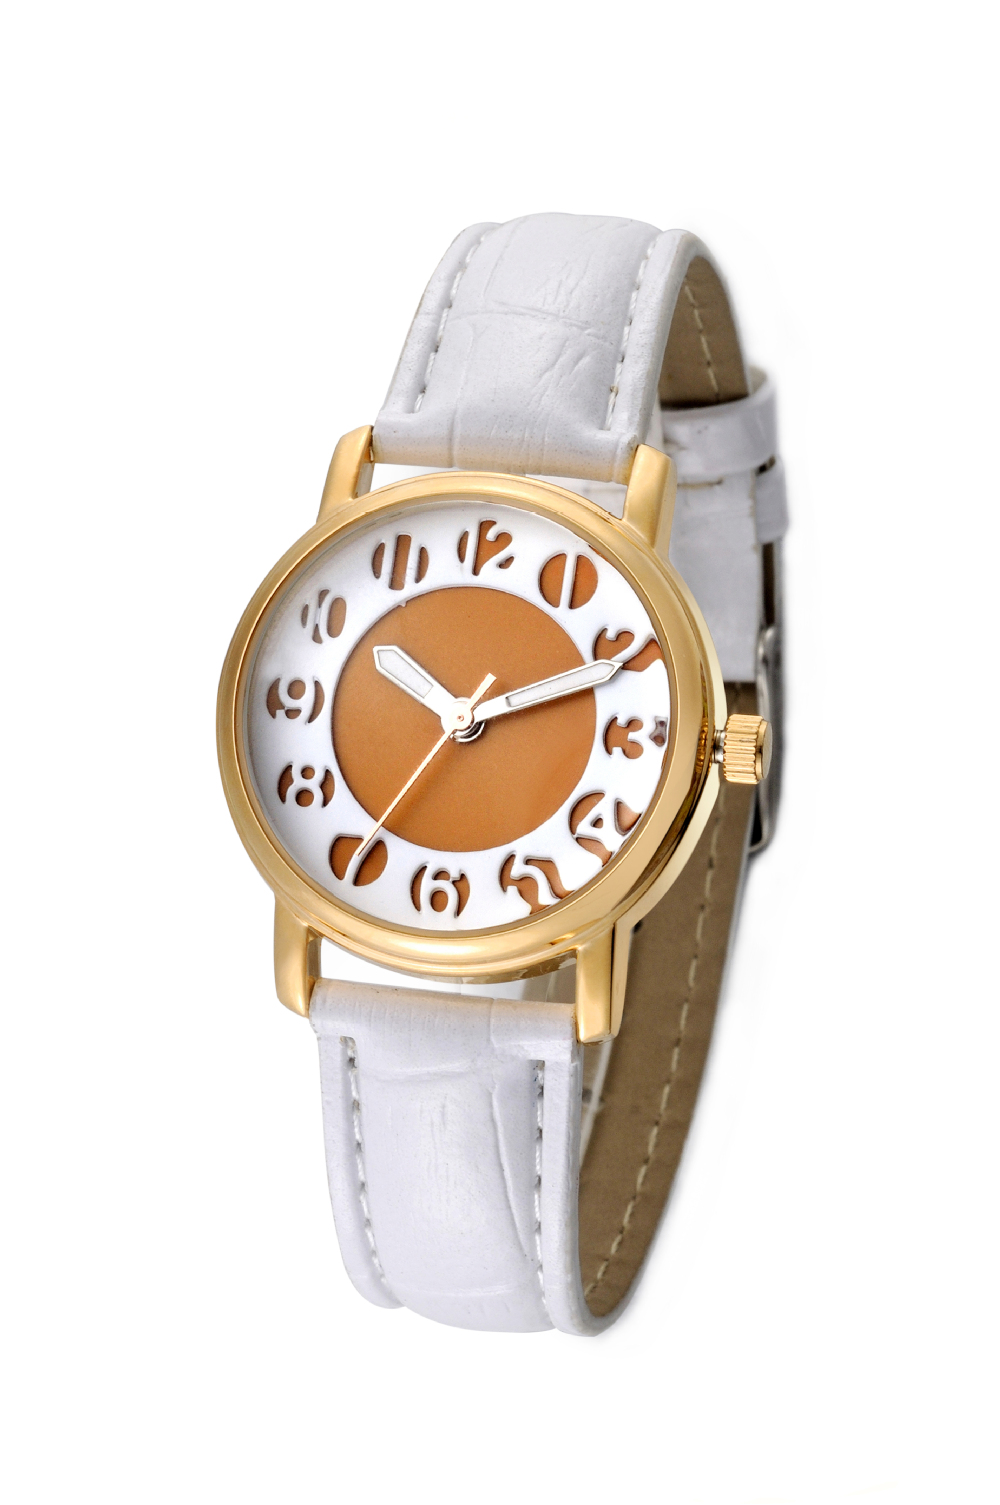 2015 stainless case back special design dial PU leather band lady wrist watch